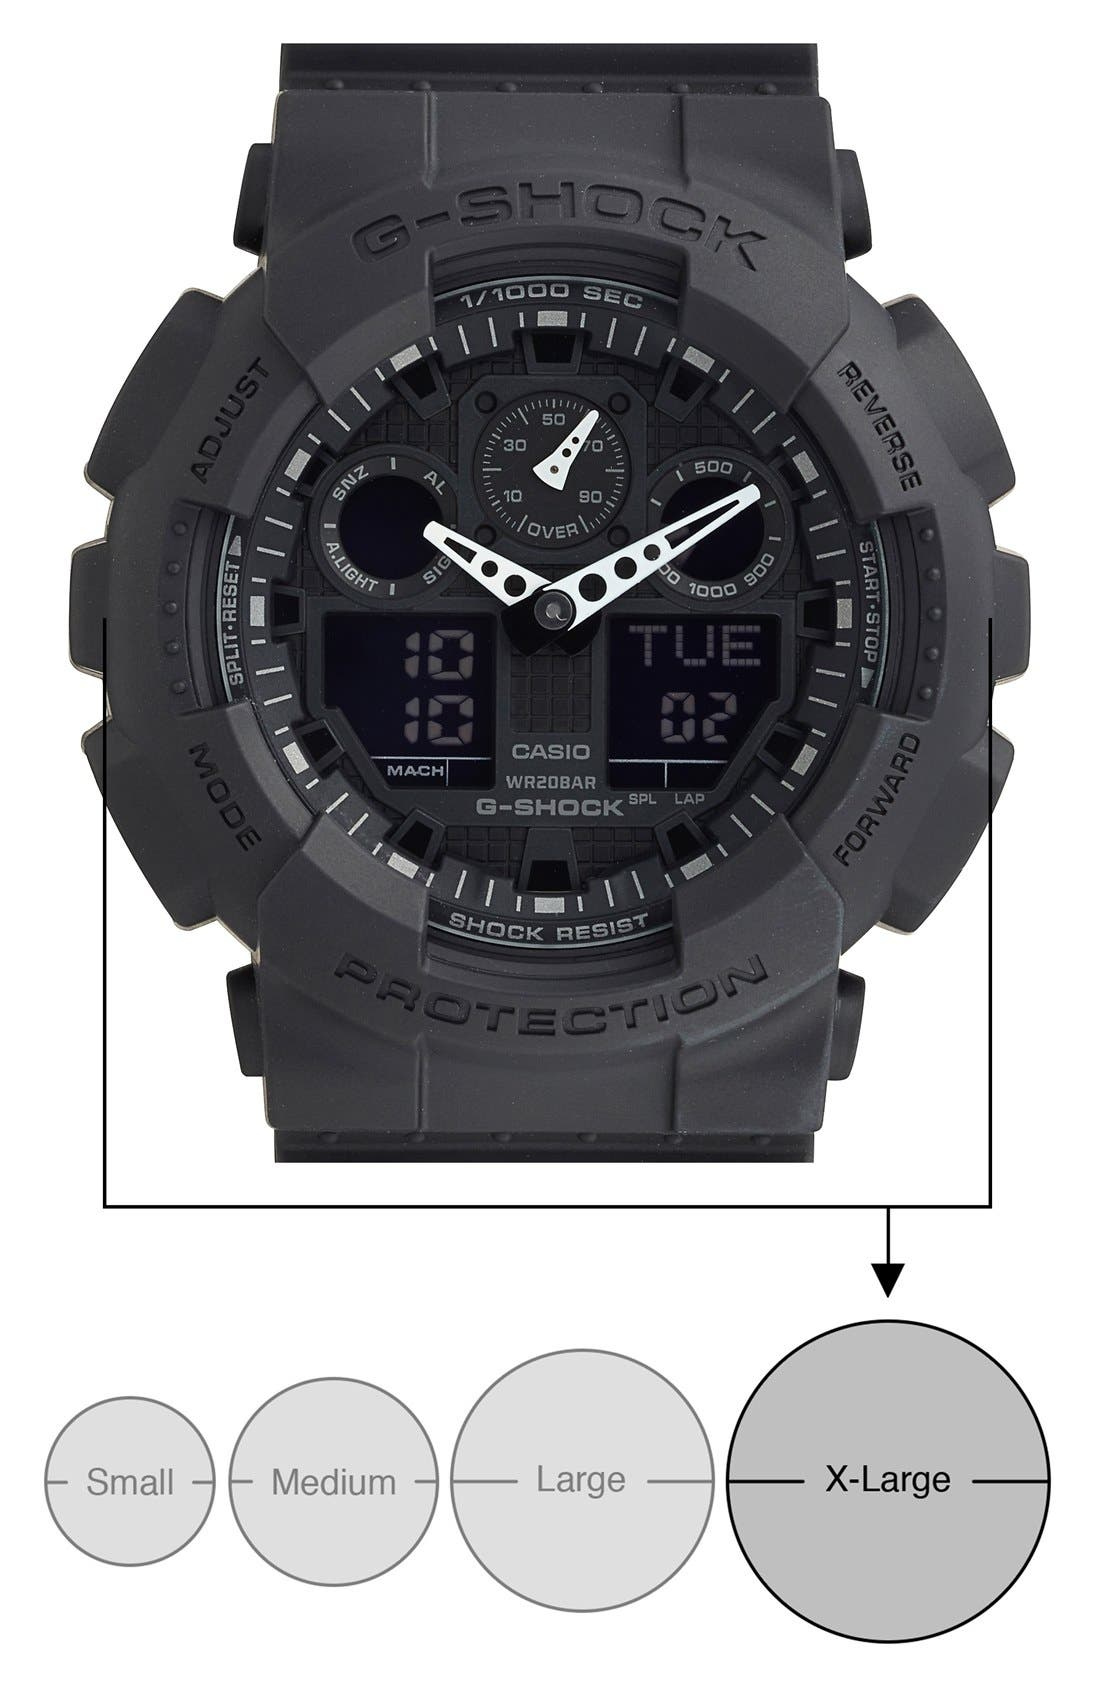 G-SHOCK BABY-G, G-Shock 'Big Combi' Watch, 55mm x 51mm, Alternate thumbnail 2, color, BLACK/ BLACK